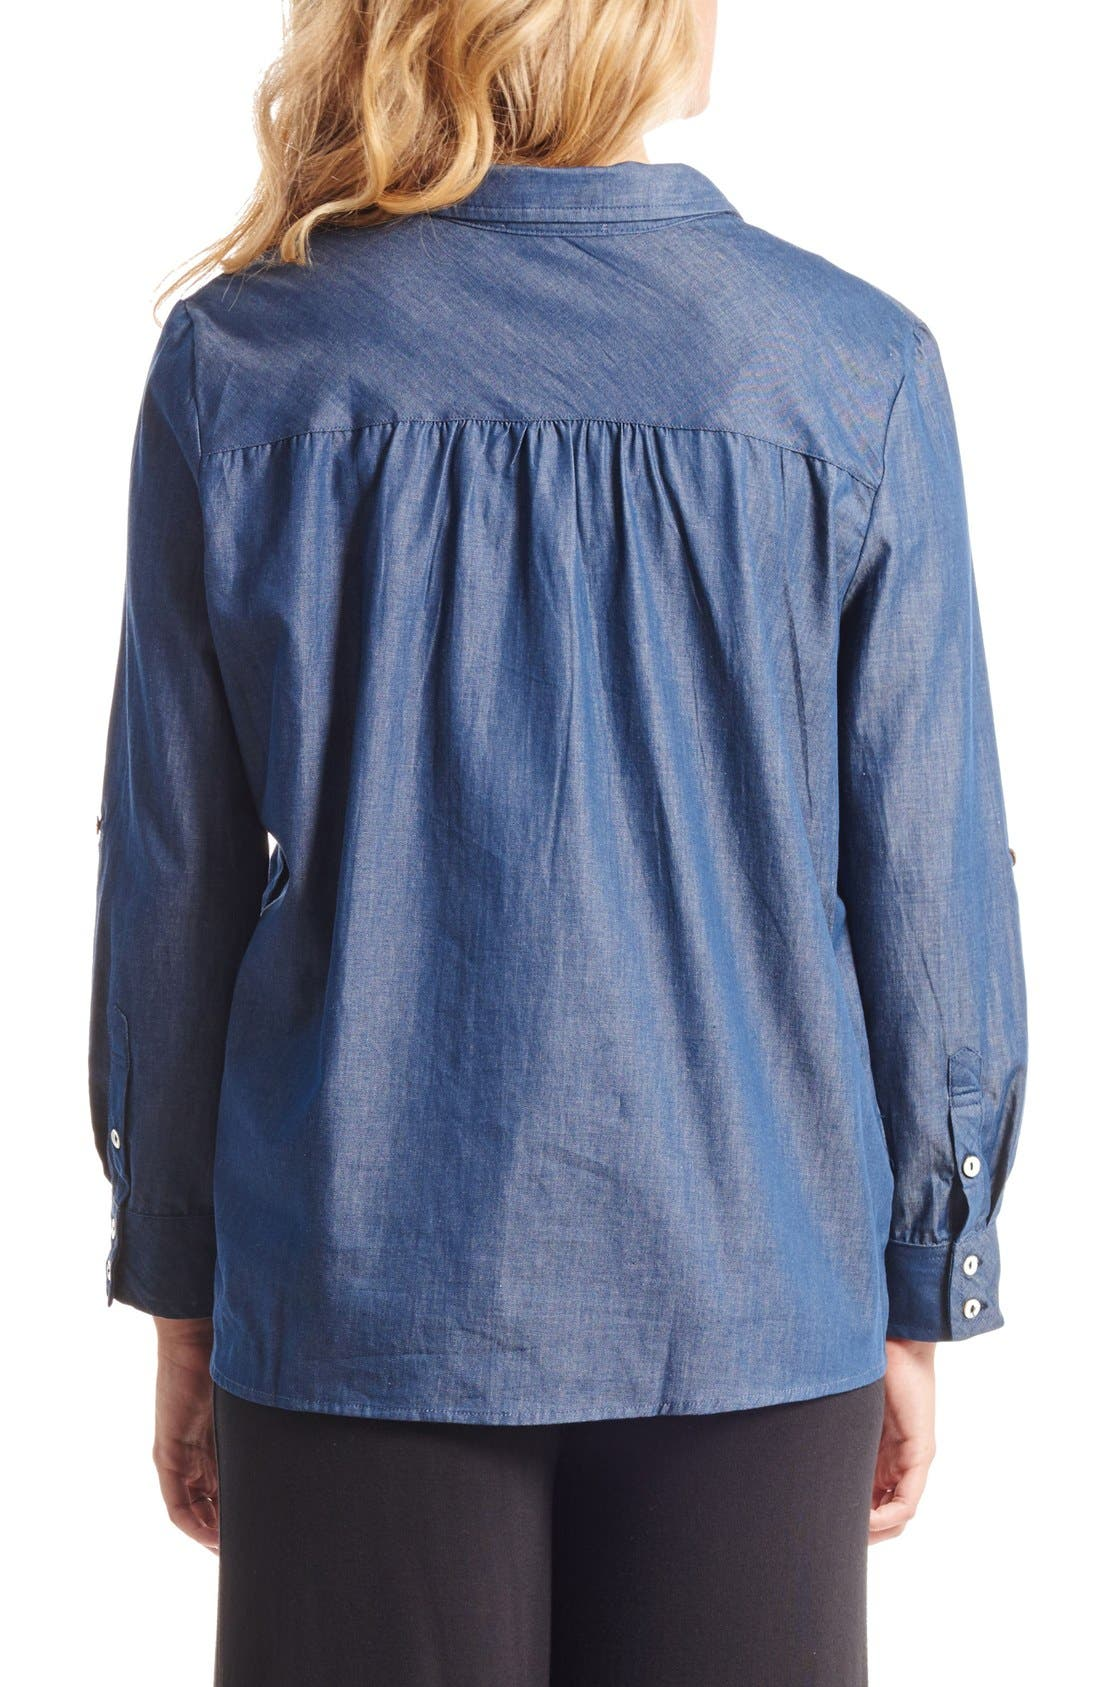 'Batina' Maternity Shirt,                             Alternate thumbnail 2, color,                             INDIGO